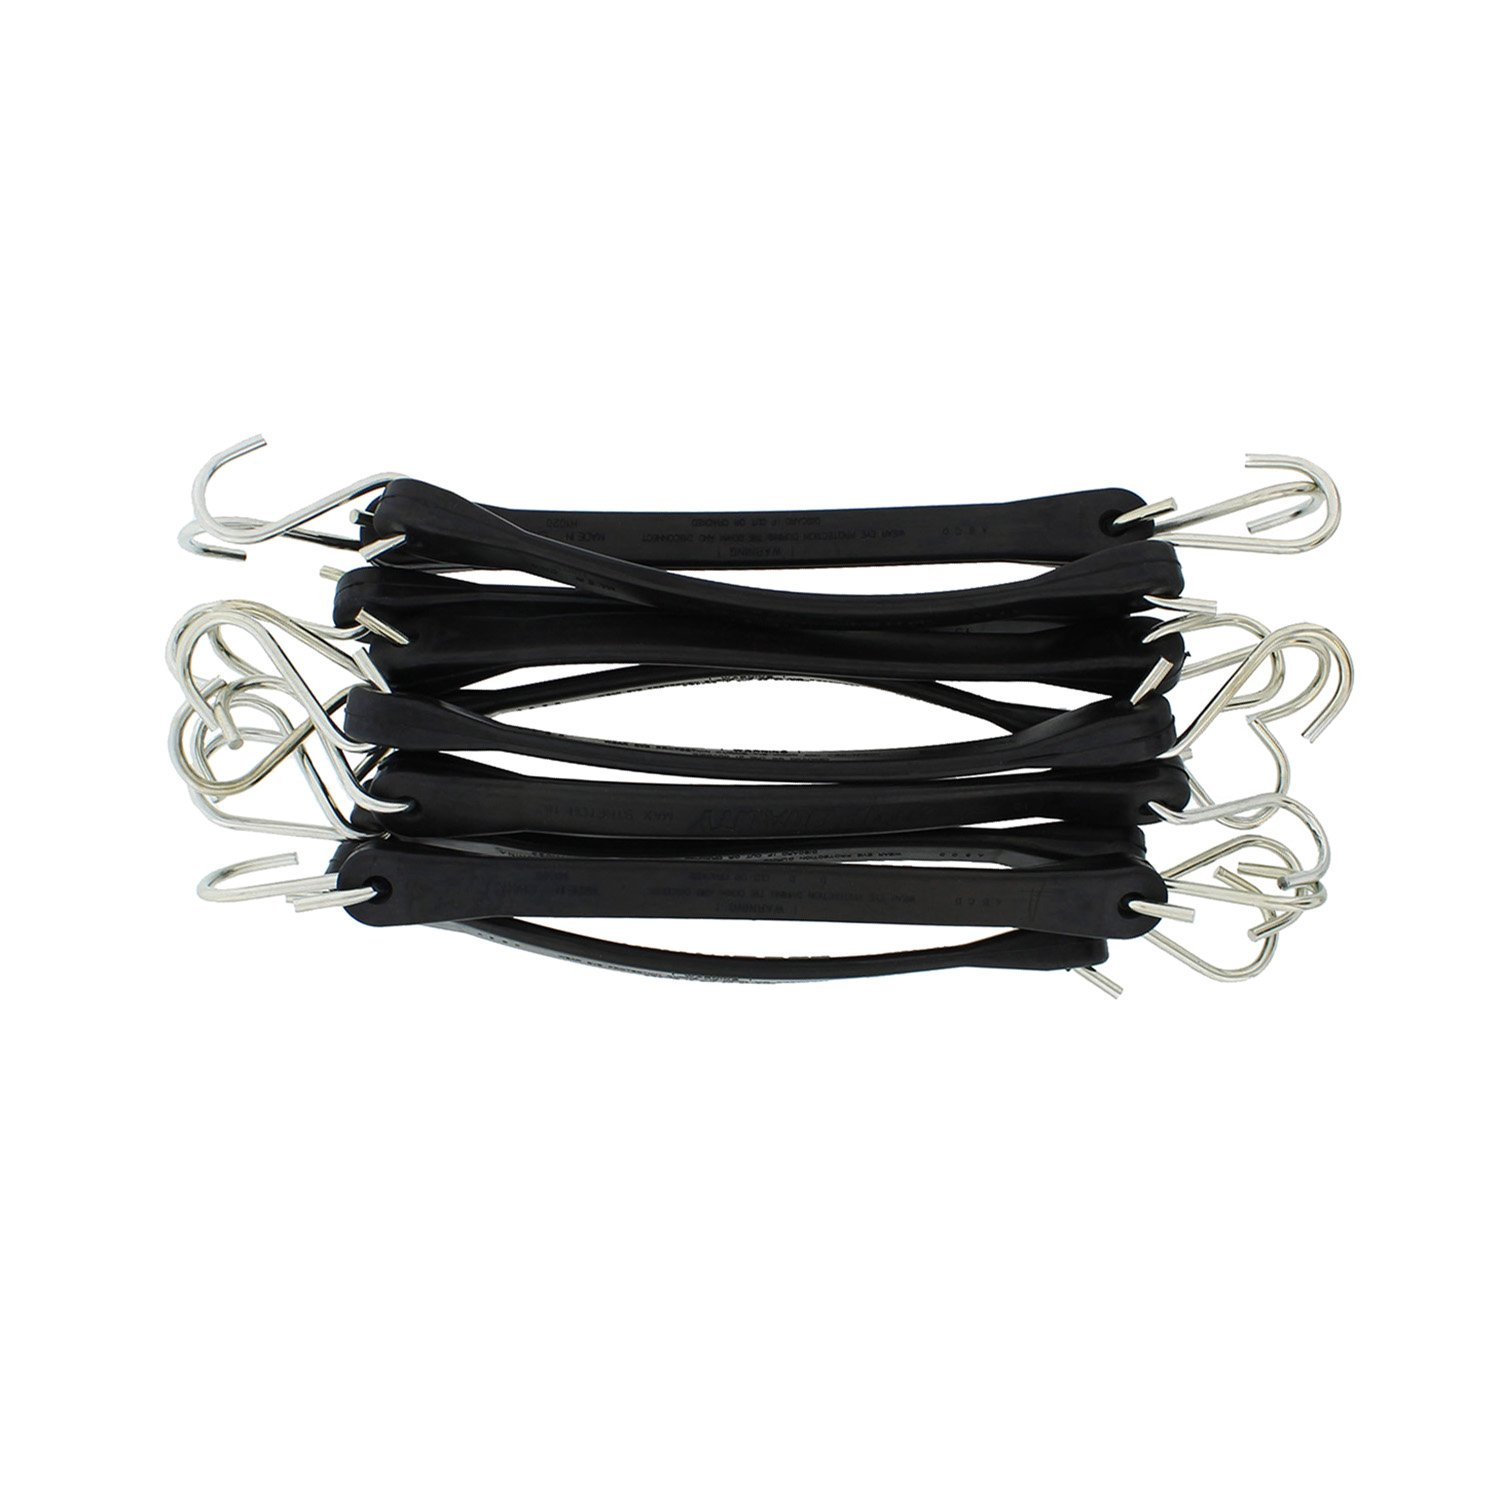 ABN EPDM Bungee Cords with Hooks 50pk, 10'' Inch (18'' Max Stretch) - Heavy Duty Bungee Cord Set, Bungee Tie Downs